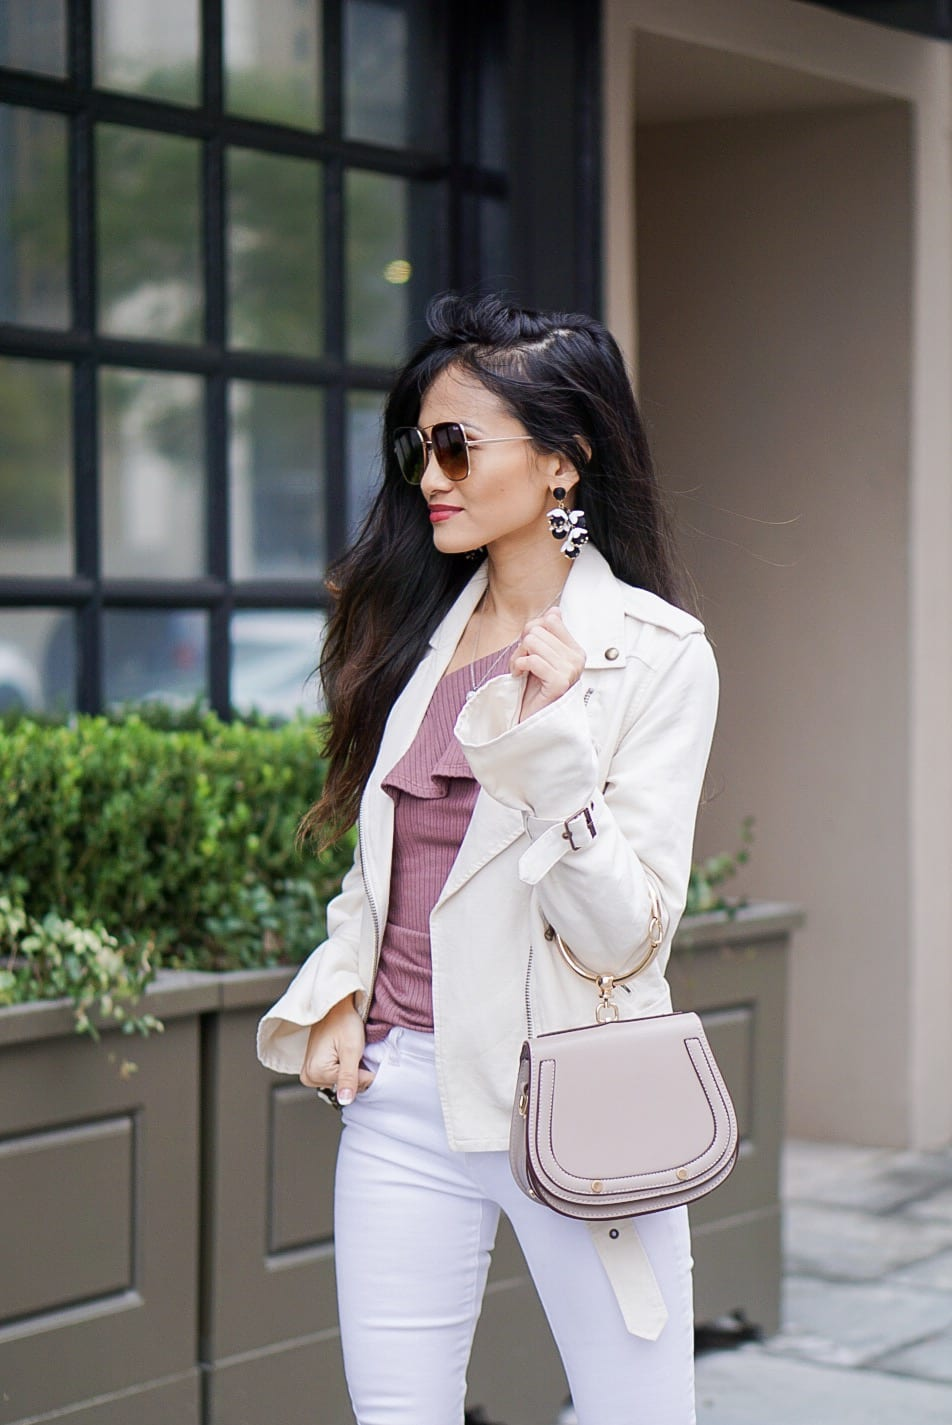 Paige papyrus moto jacket, white on white, white jacket, white moto jacket, one shoulder ruffle top, quay sunglasses, bauble bar earrings, white denim, white denim outfit, winter to spring outfit, small chested outfit, tips for styling with small breast,